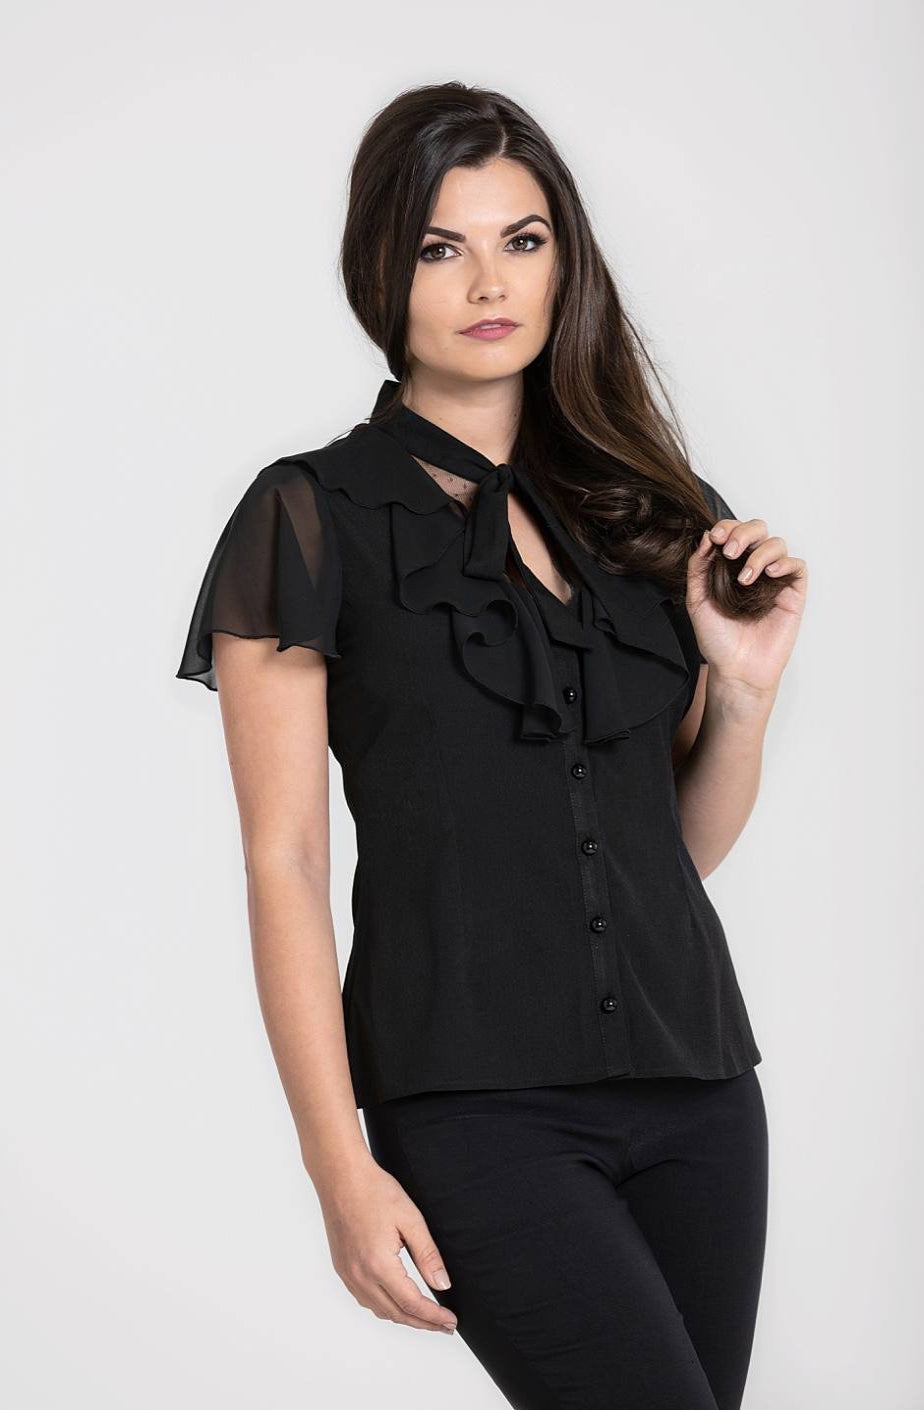 Evanora Black Mesh and Ruffle Blouse by Hell Bunny